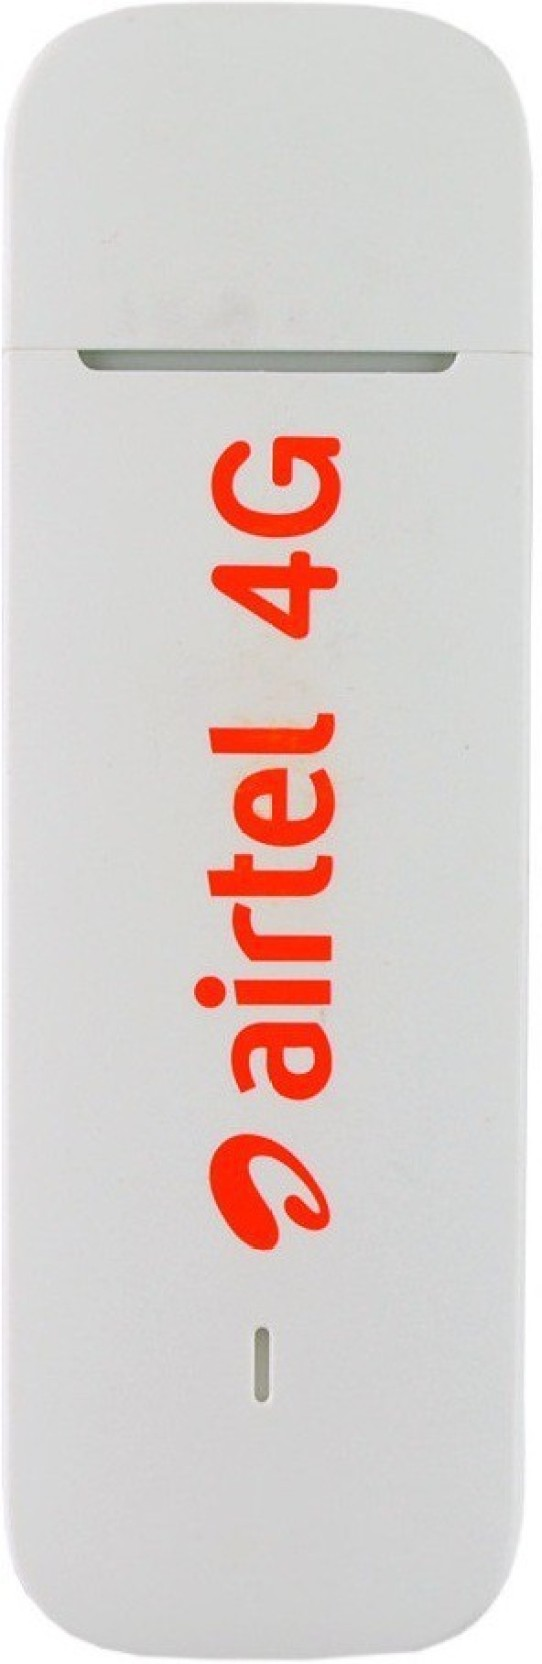 Airtel E3372 4G LTE Unlocked USB Dongle Data Card